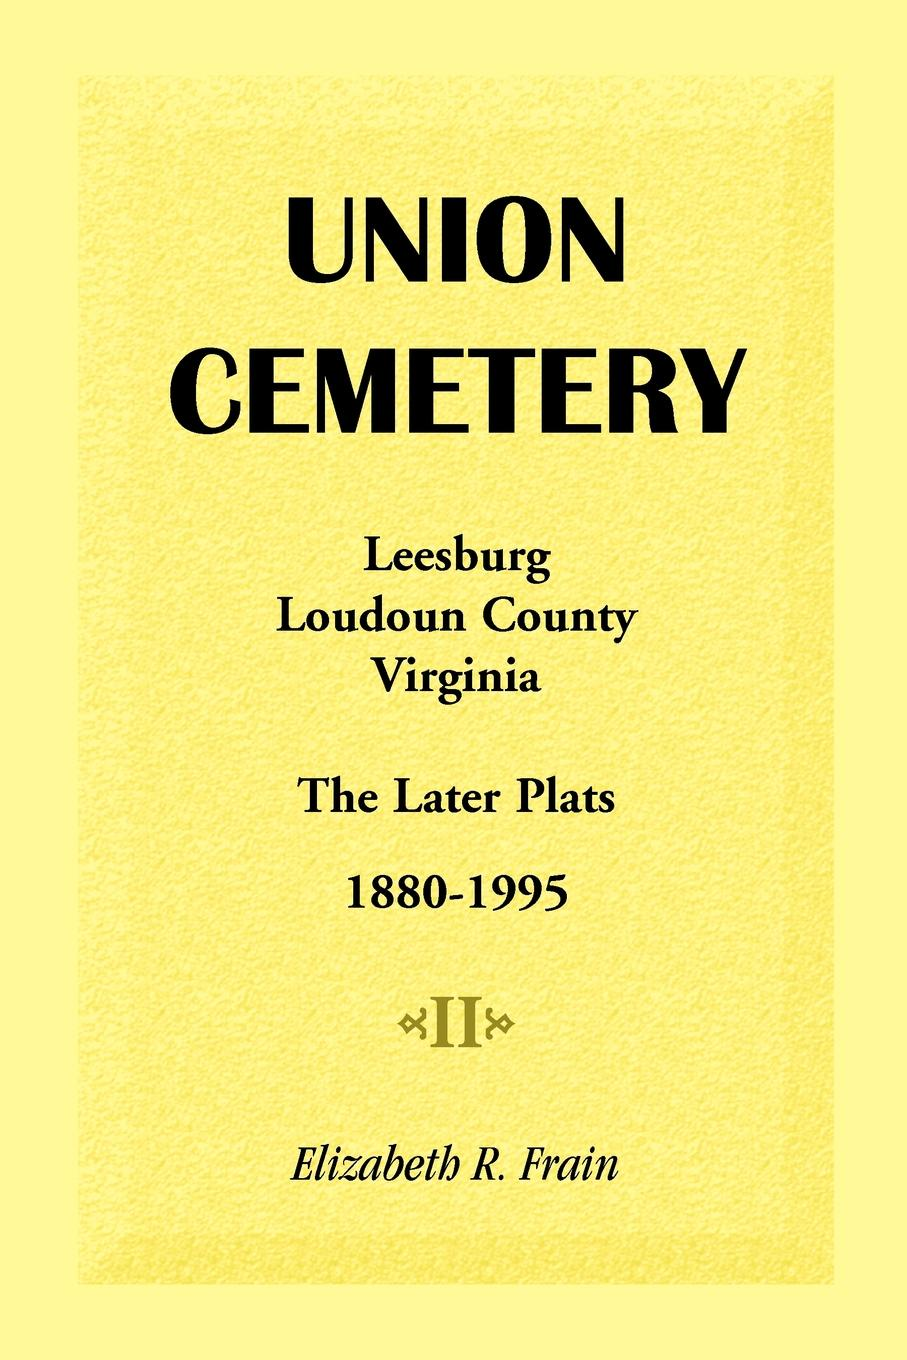 Elizabeth R. Frain Union Cemetery, Leesburg, Loudoun County, Virginia, the Later Plats, 1880-1995